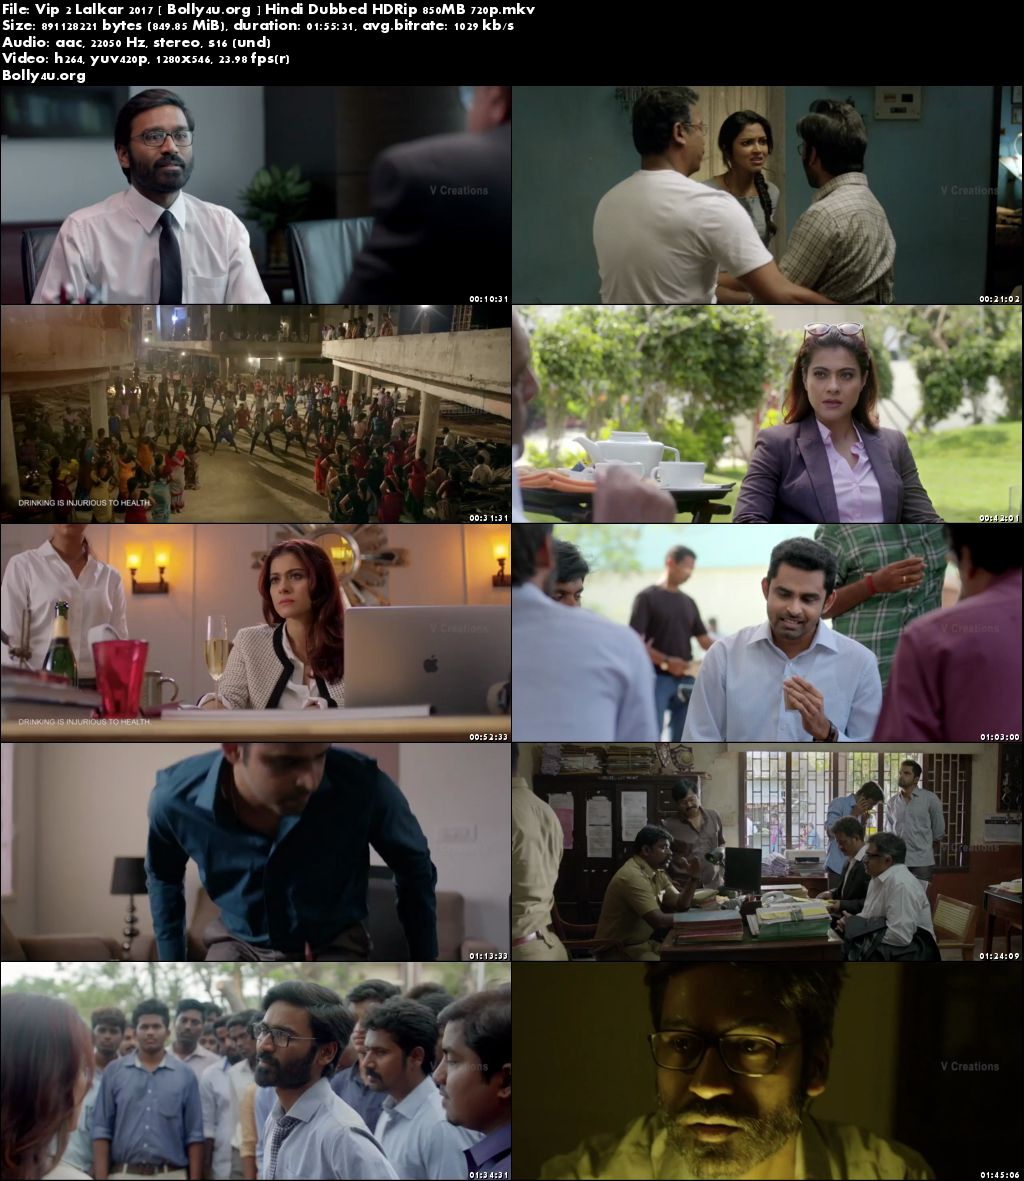 VIP 2 Lalkar 2017 HDRip 850MB Full Hindi Dubbed Movie Download 720p